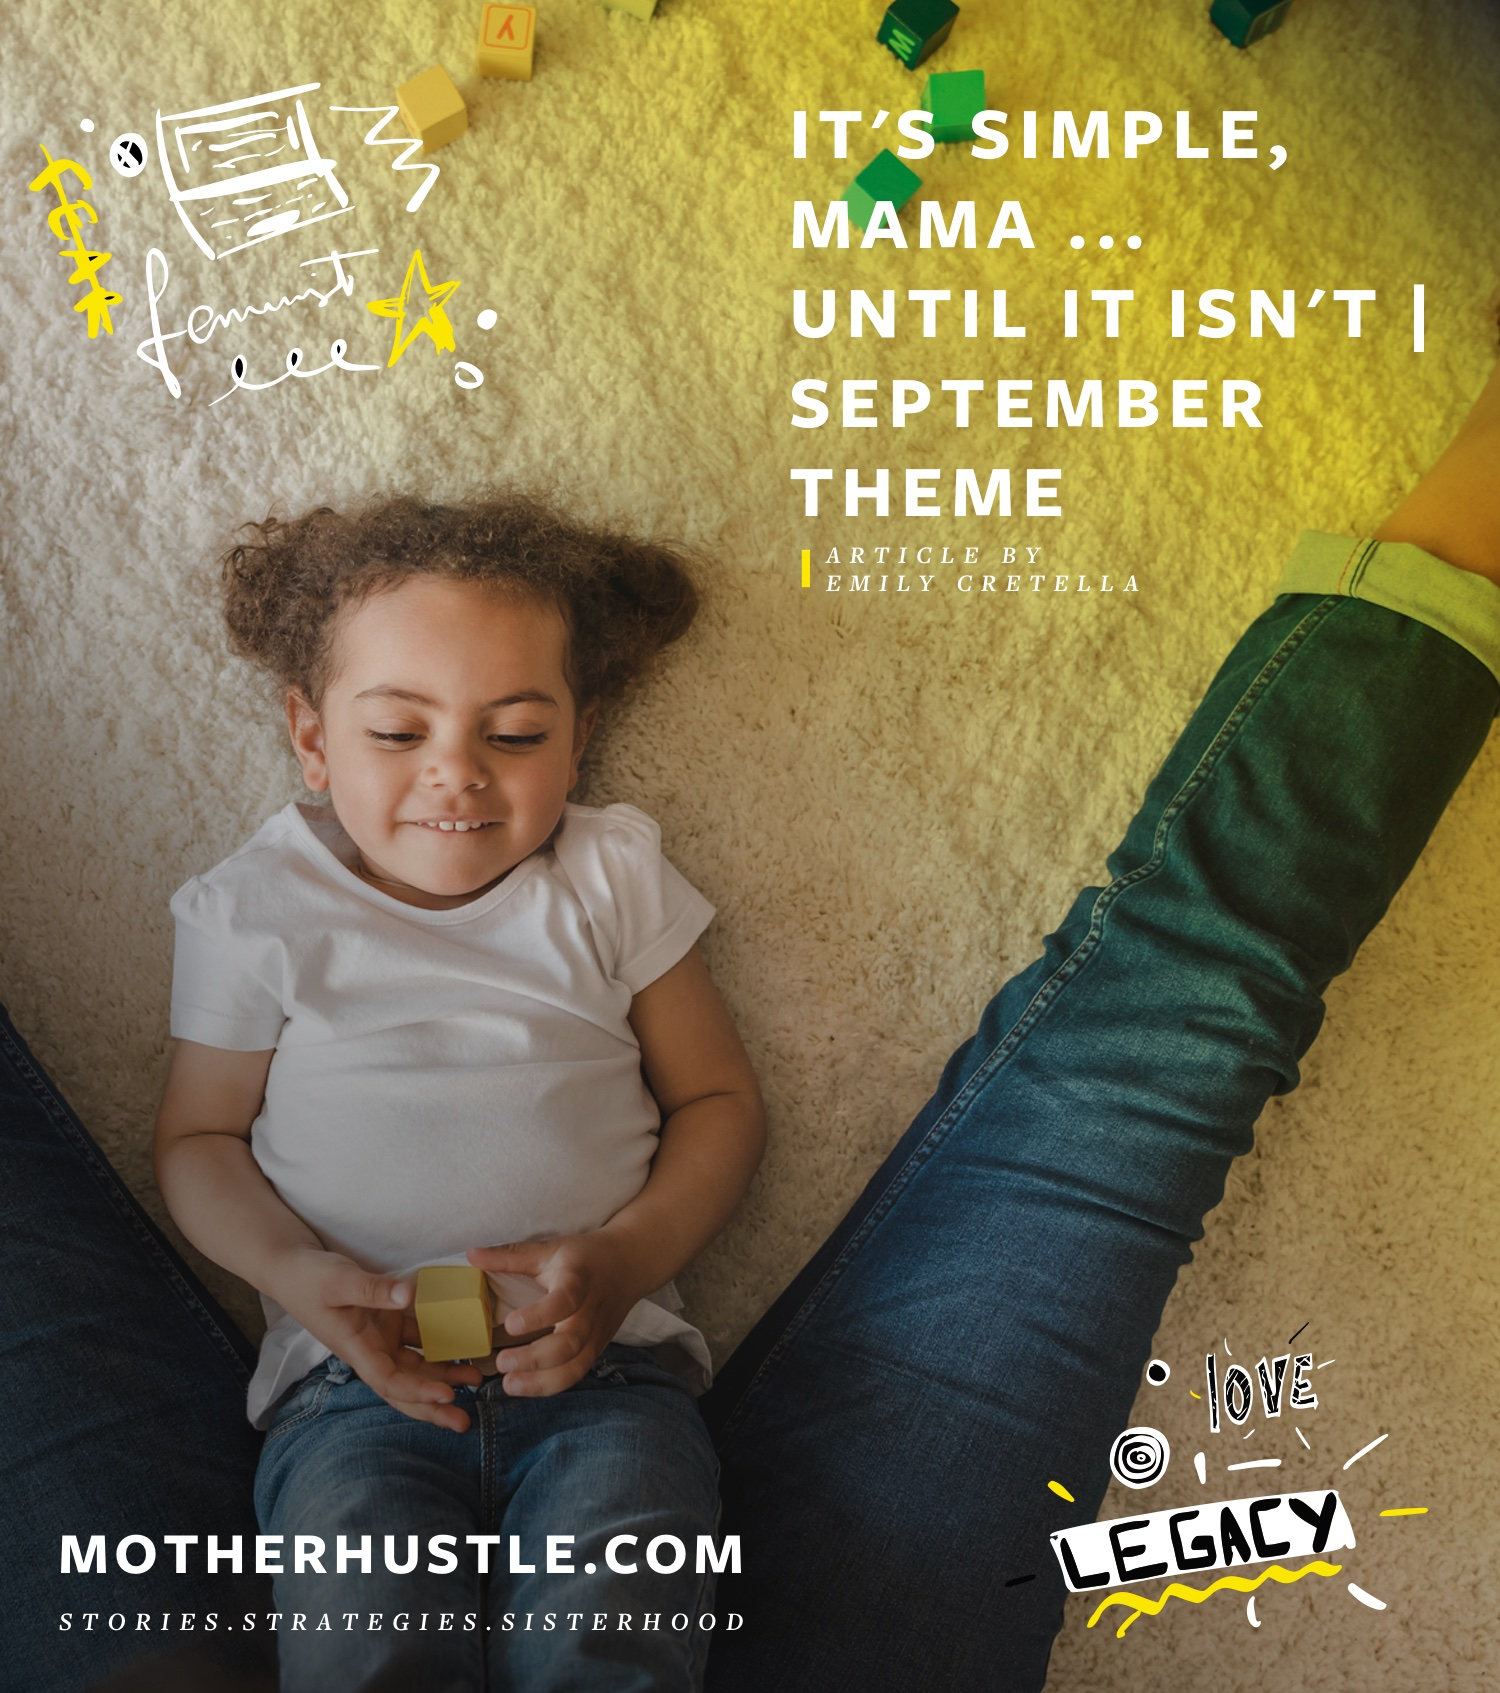 It's Simple, Mama ... Until It Isn't [September Theme] - Emily Cretella MotherHustle